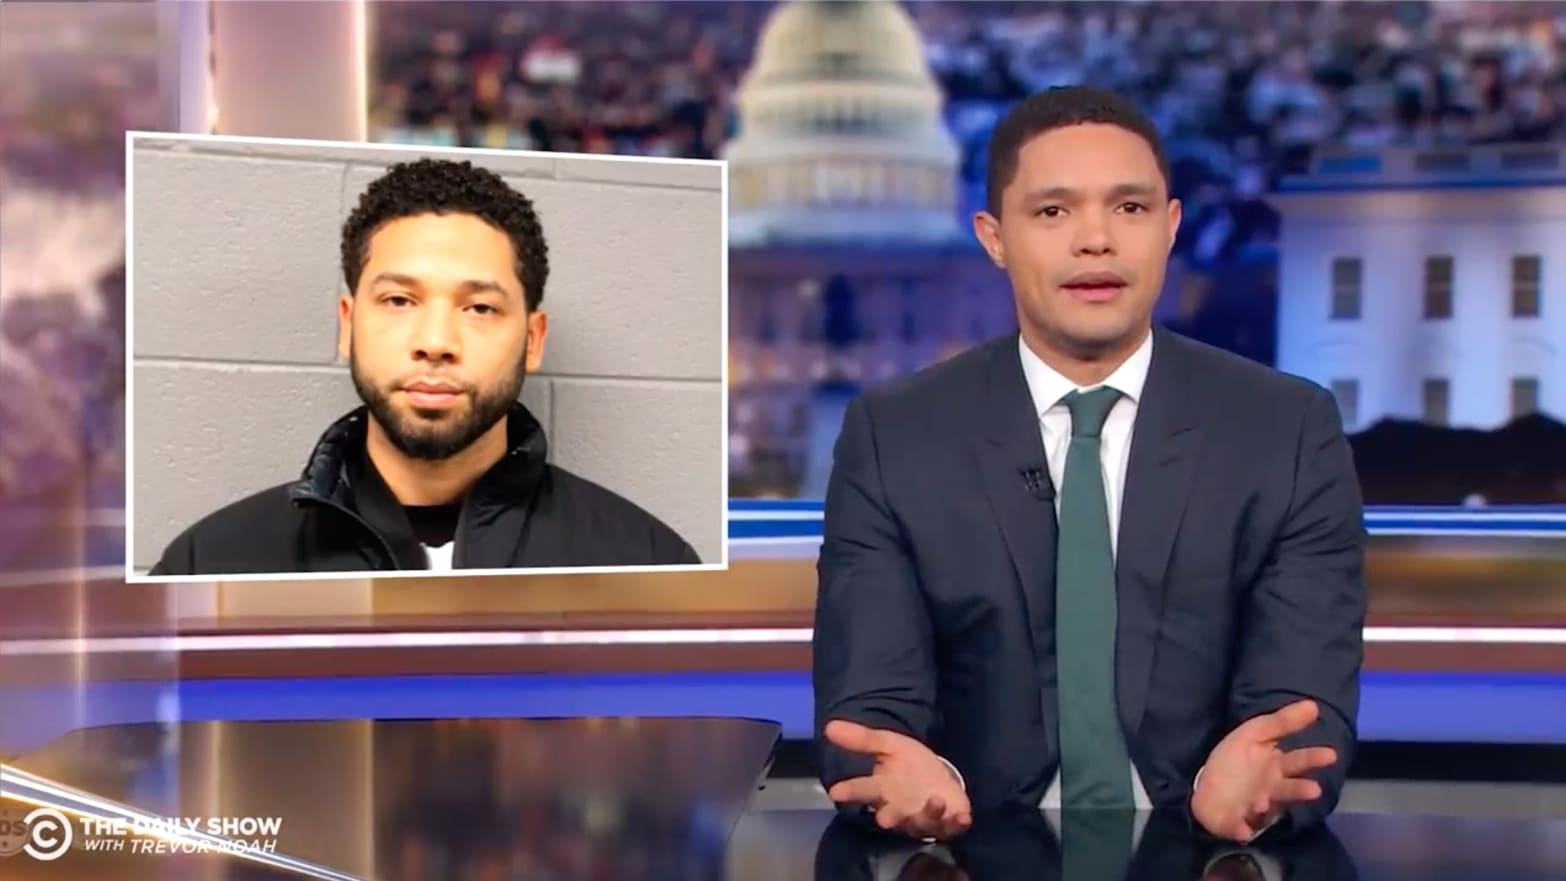 'Daily Show's' Trevor Noah Destroys Jussie Smollett's 'Fake Hate Crime' Fail